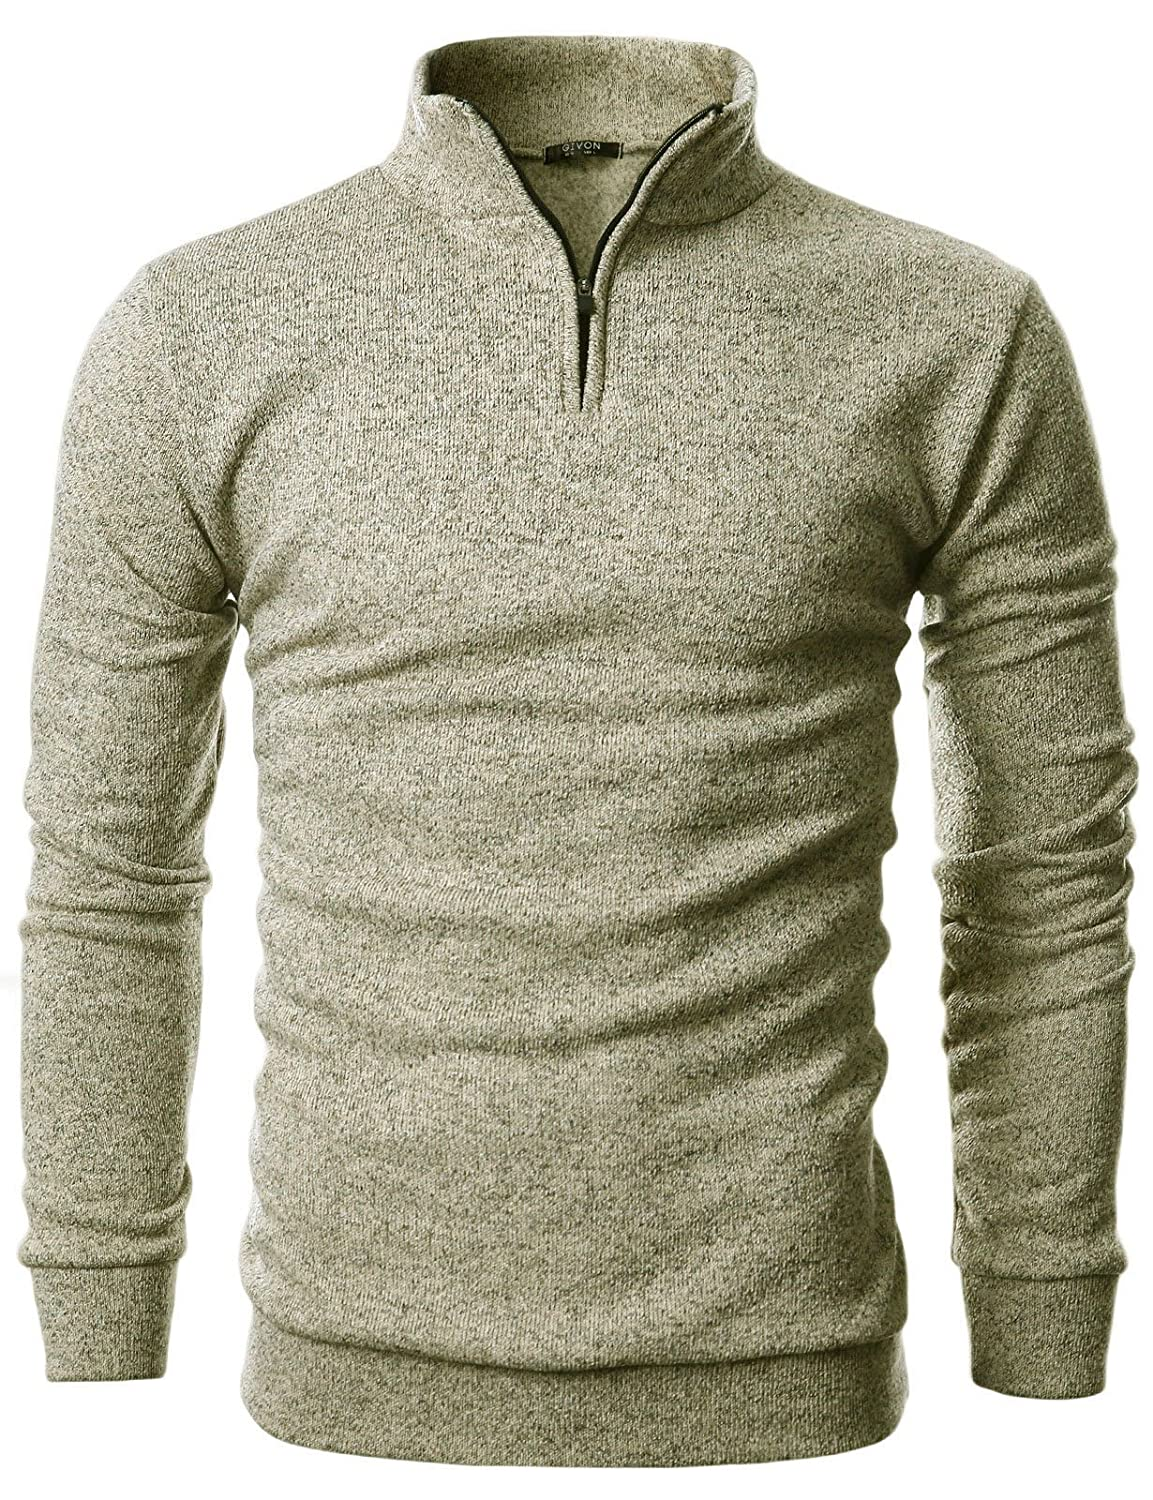 GIVON Mens Slim Fit Cable Knit Quarter Zip Long Sleeve Turtle Neck Pullover Sweater